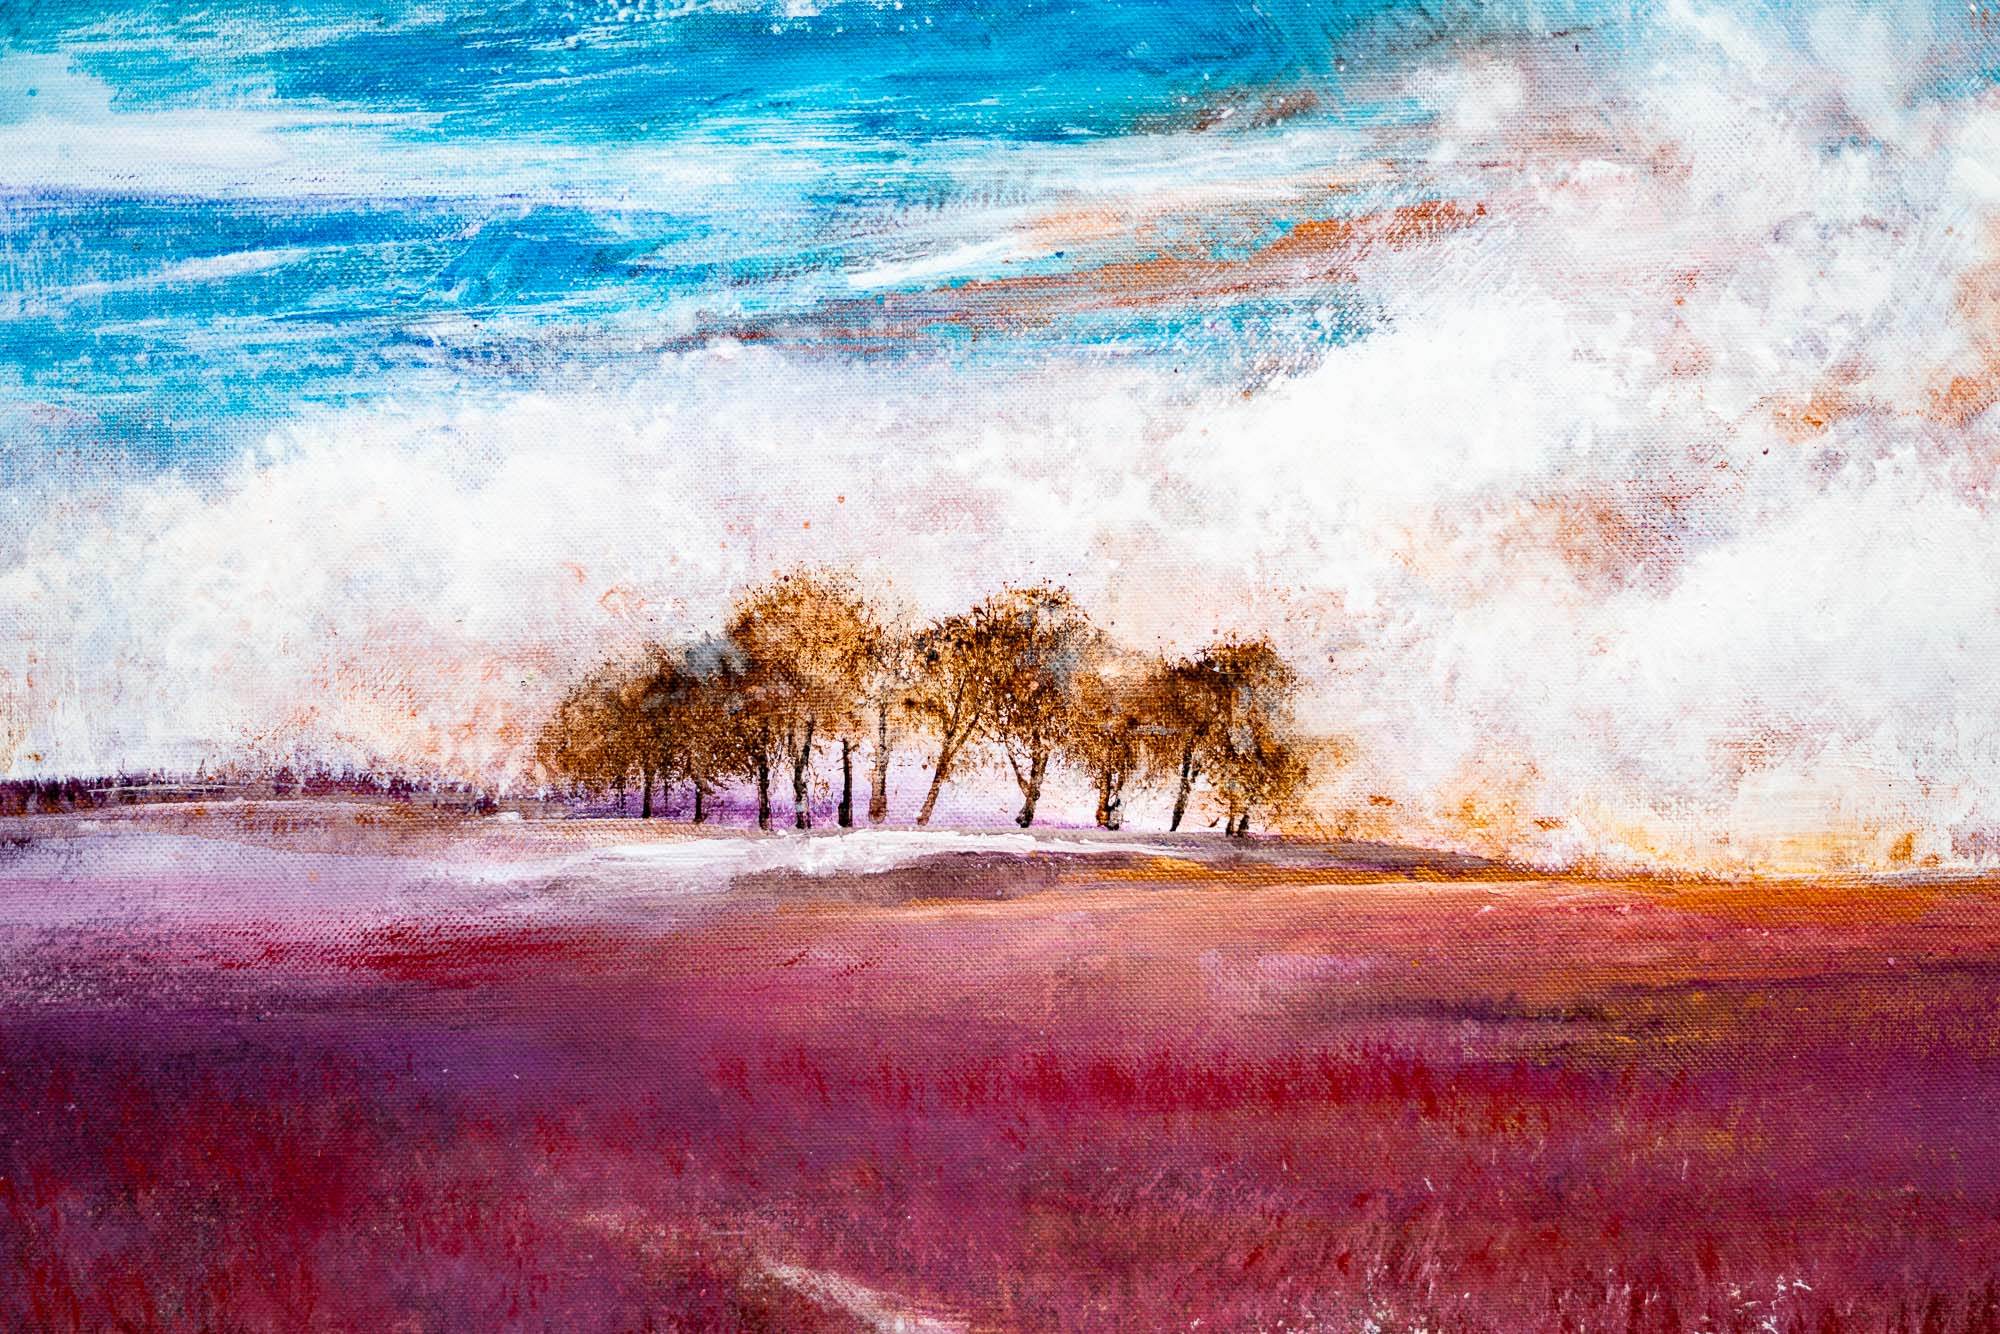 Rosemary Abrahams Landscape Painting